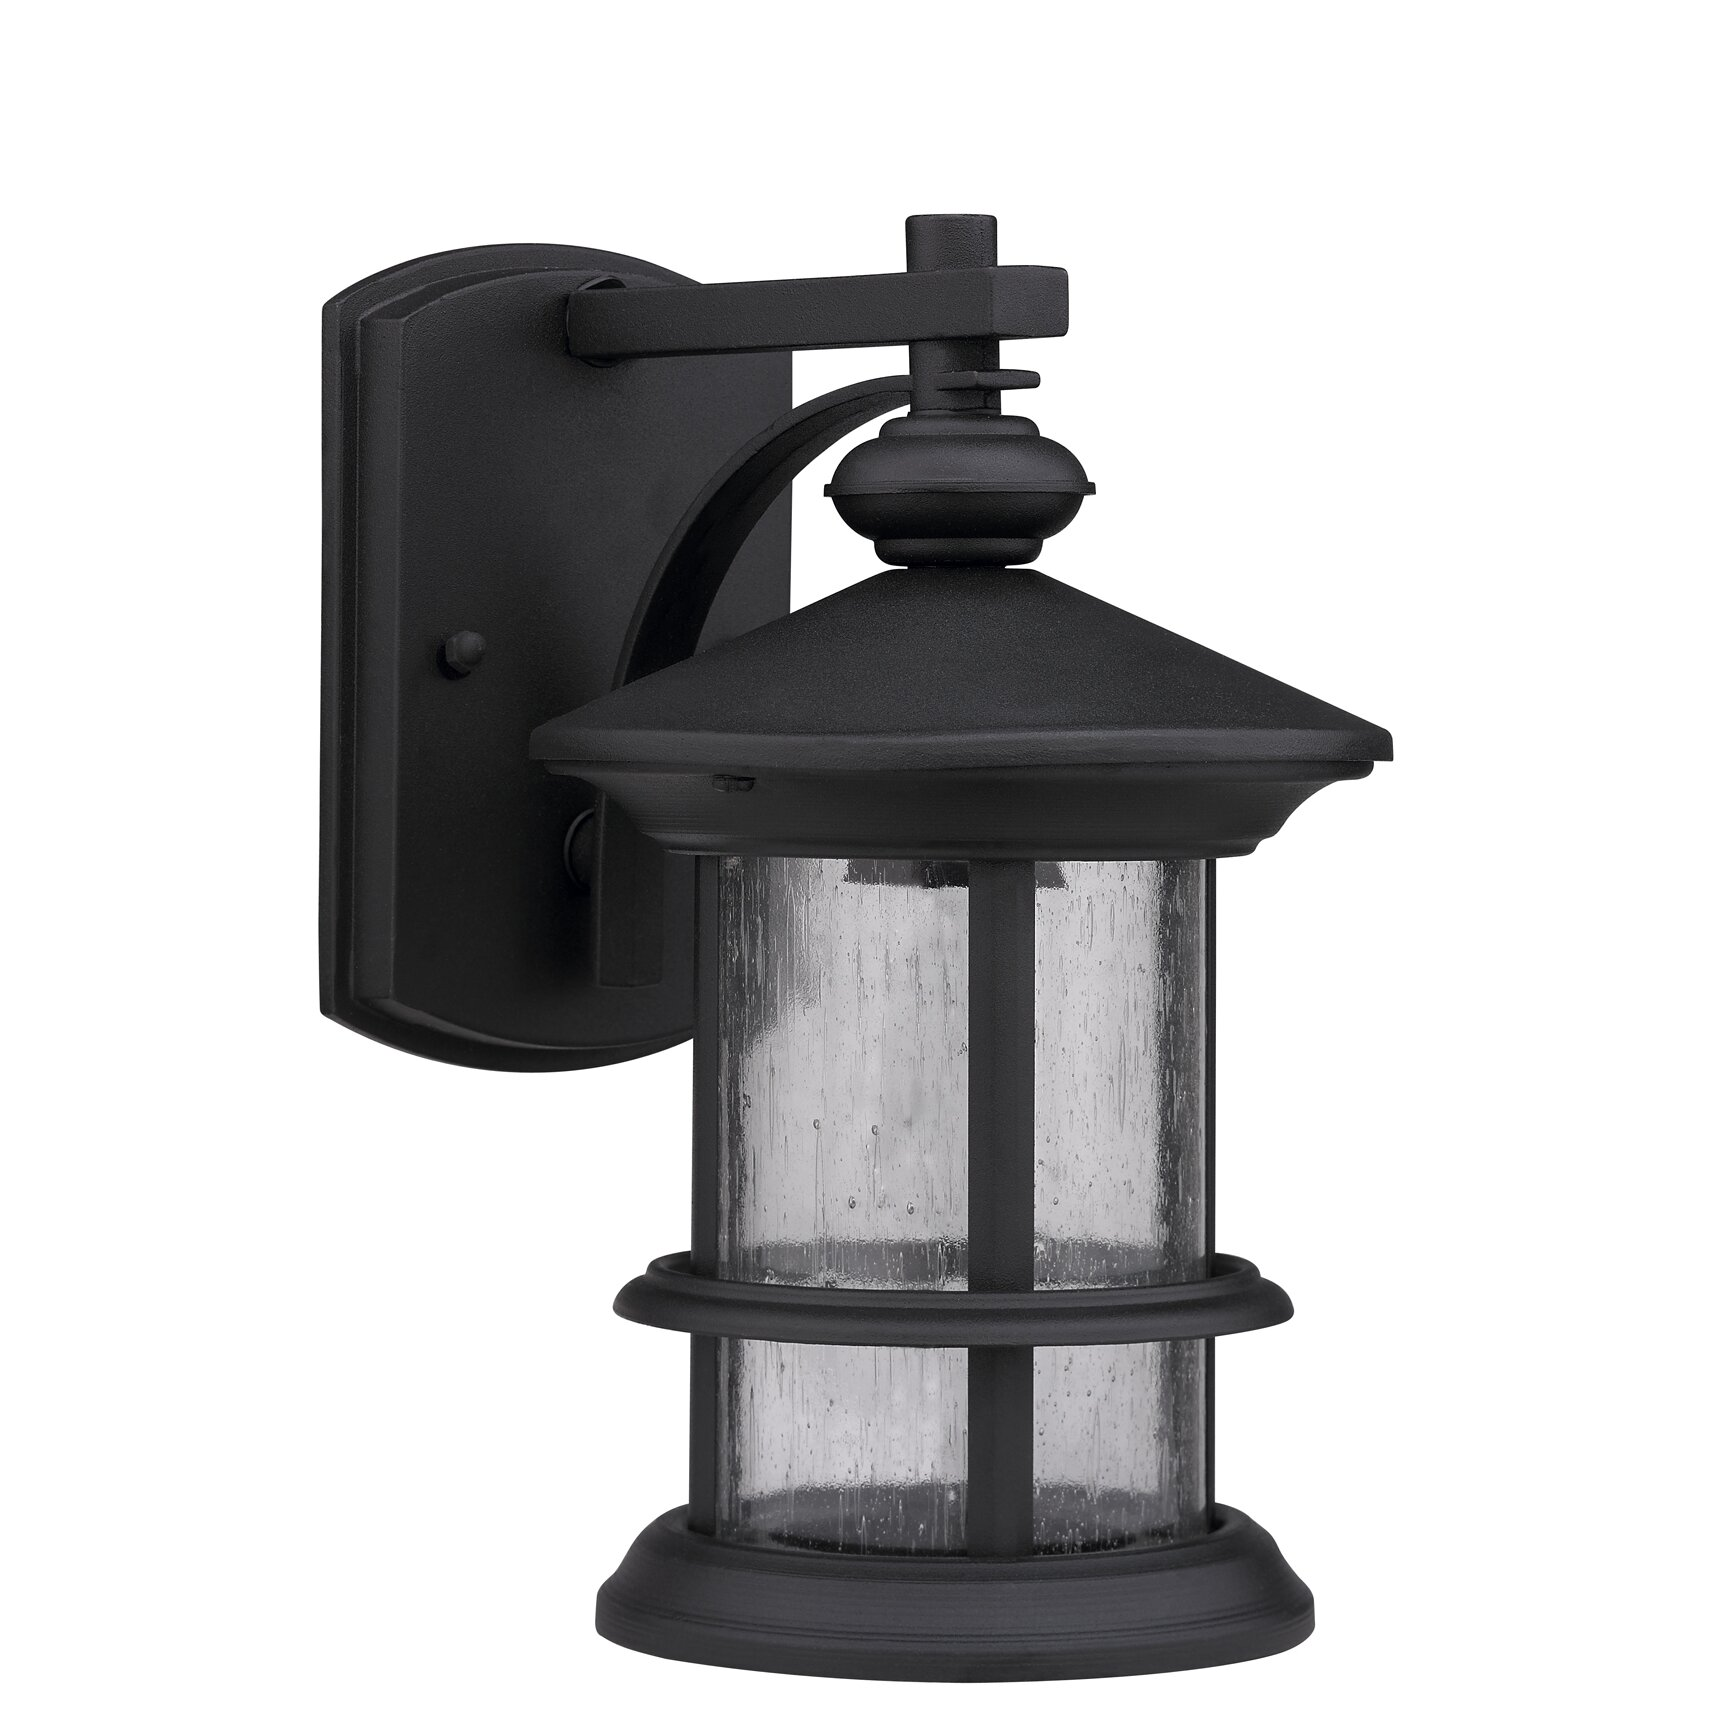 Lantern Wall Light Outdoor : Chloe Lighting Ashley Superiora 1 Light Outdoor Wall Lantern & Reviews Wayfair